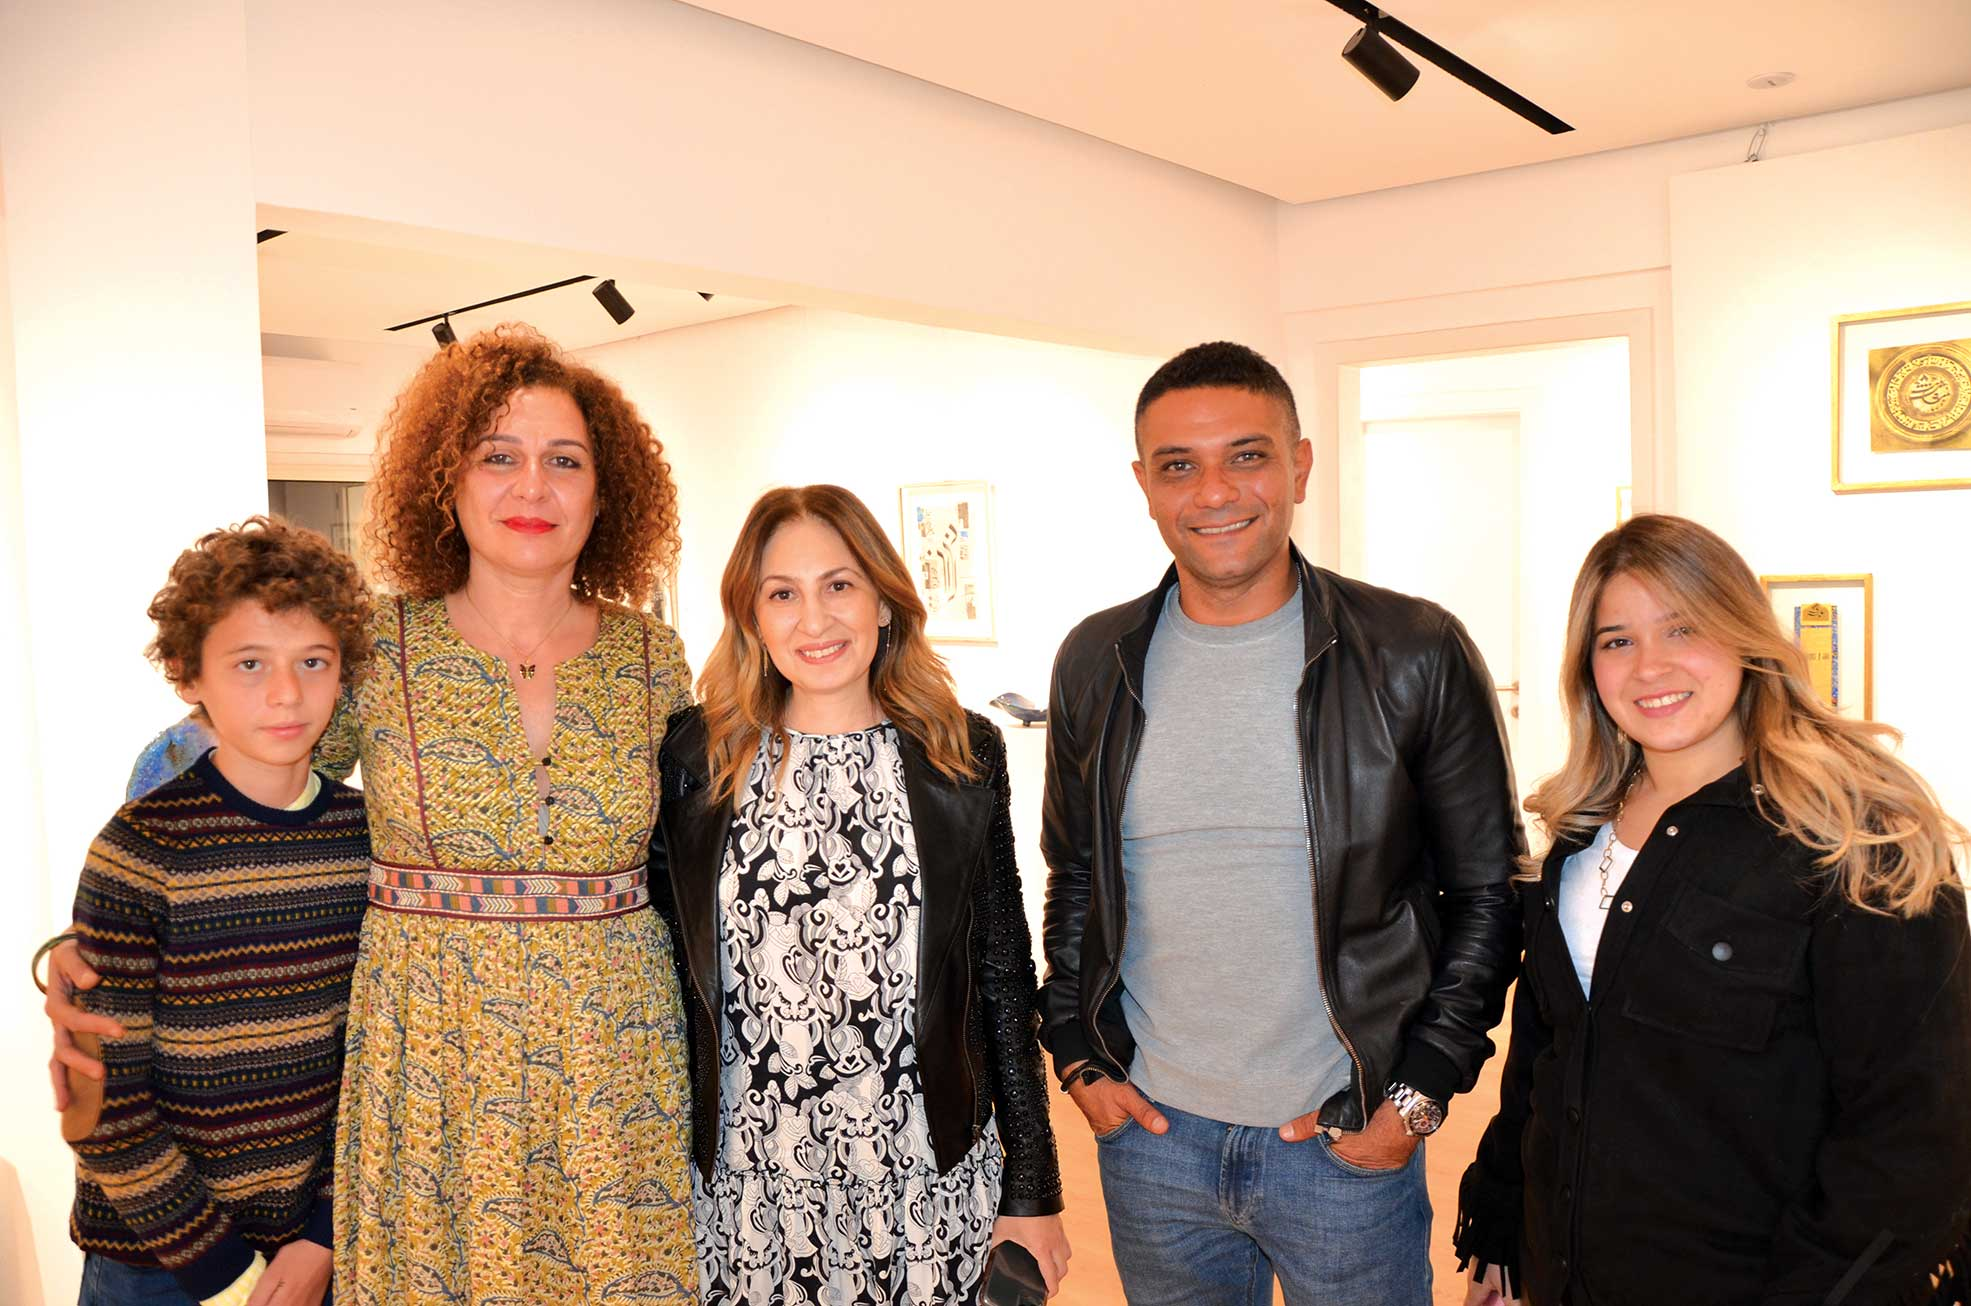 Mr. Rami Pleutin, Ms. Heba Helmy, Ms. Injy ElHakim, Mr. Asser Yassine & Ms. Nagham Saied